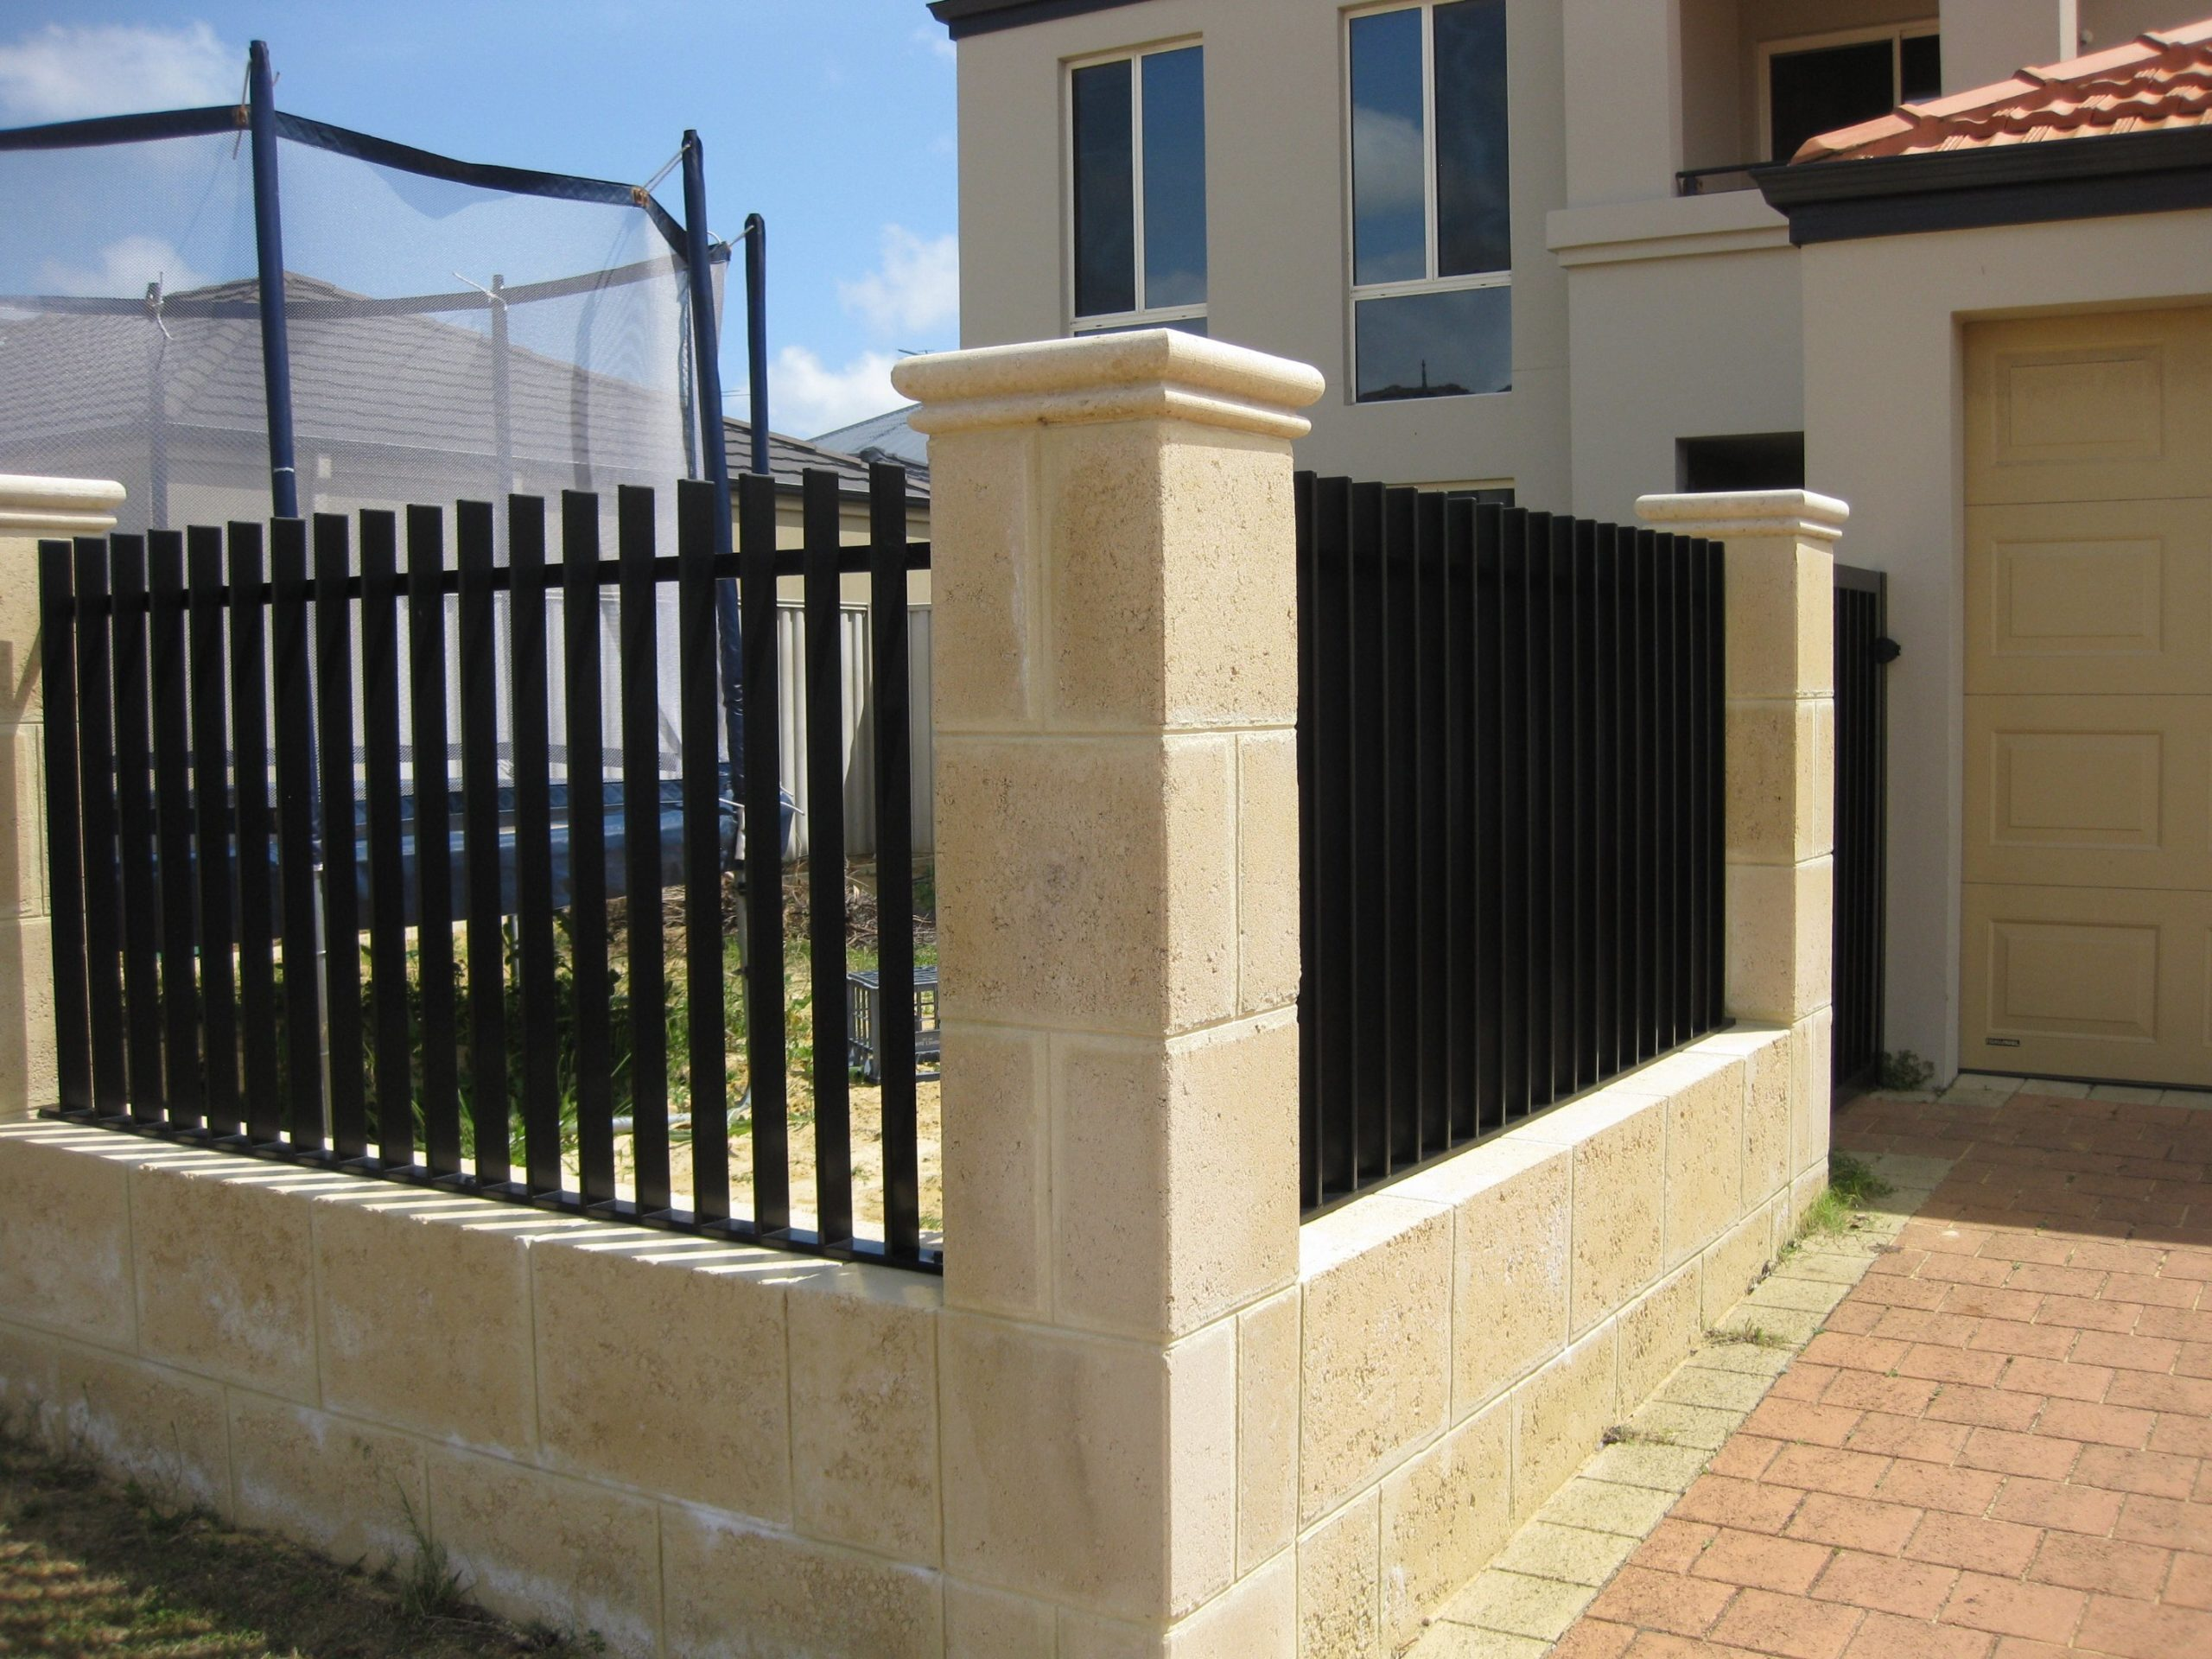 Slat Whitby Blade Infill Panels and Gate